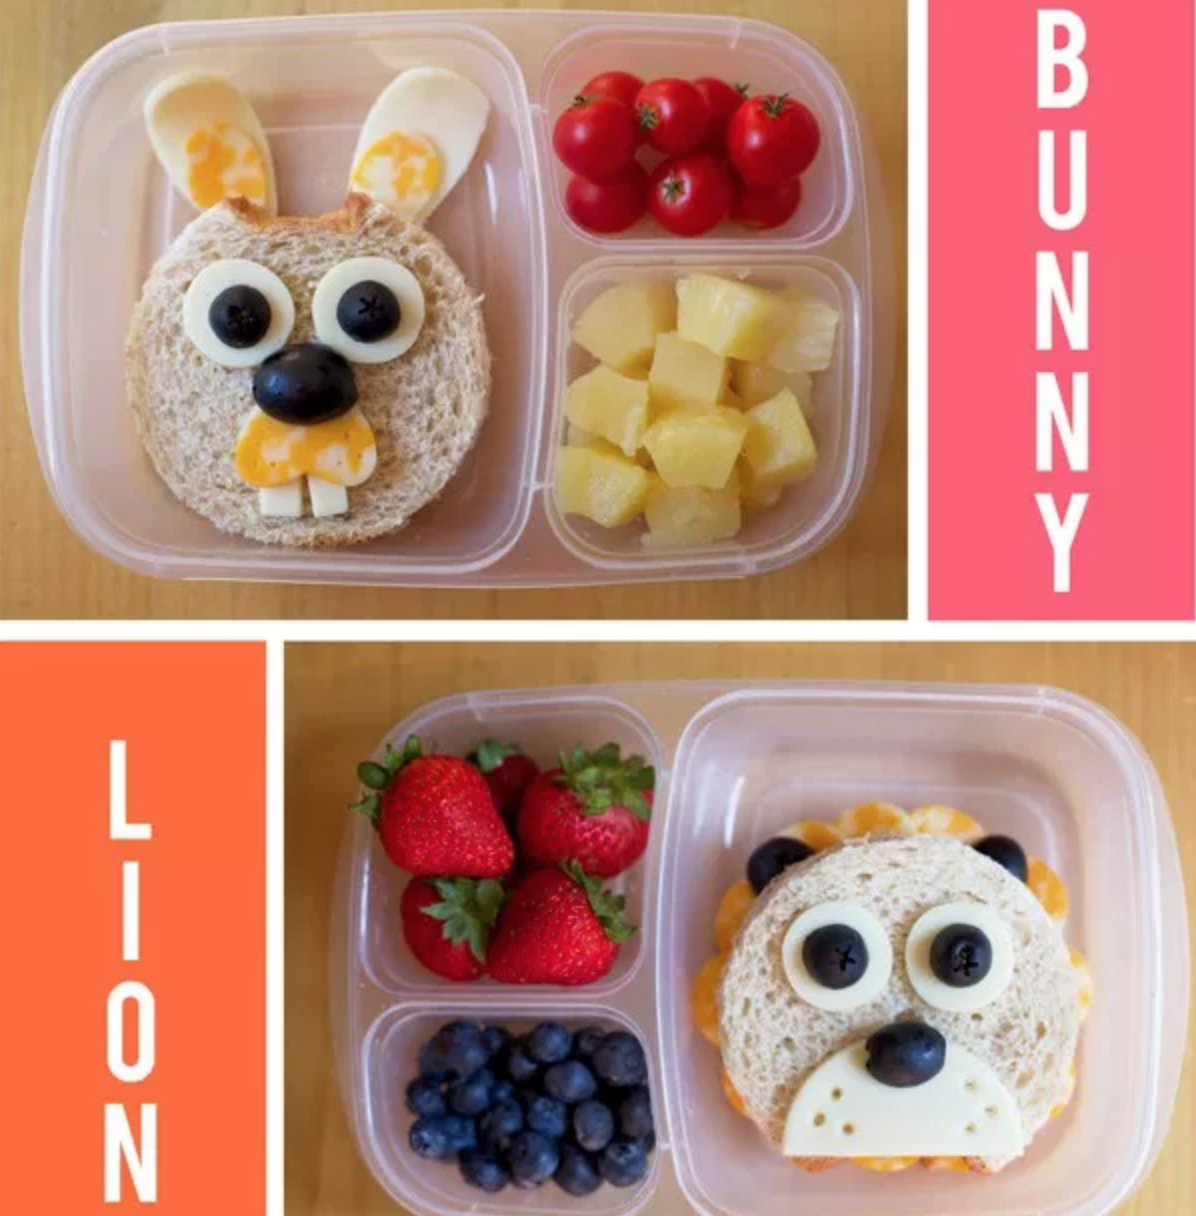 Lunches made to look like animals